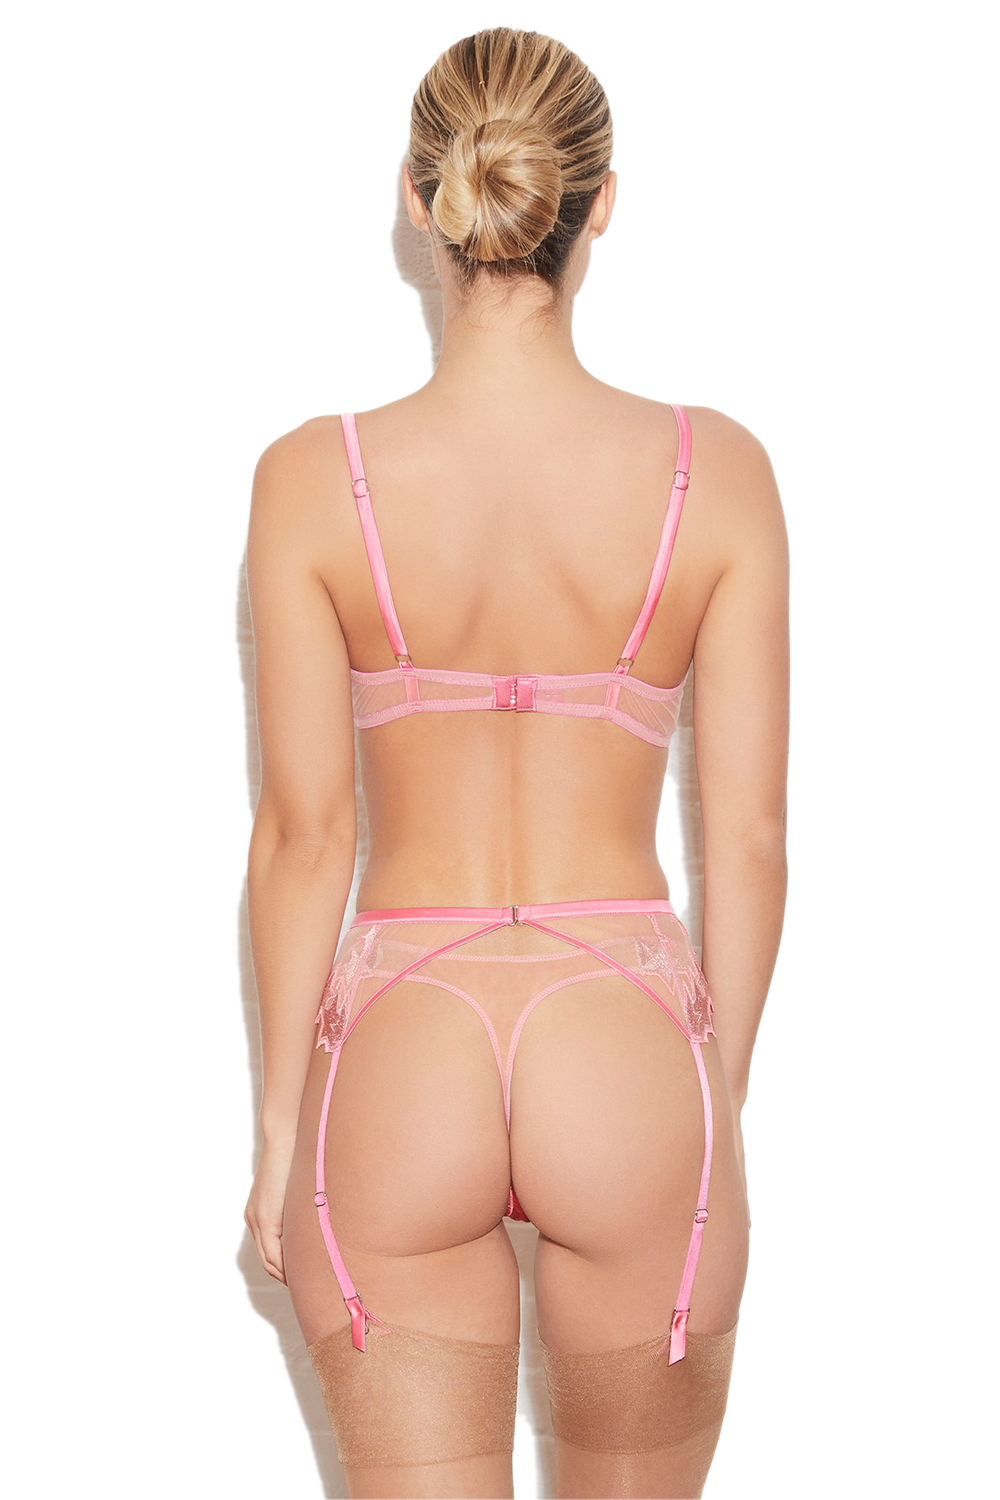 Superstar Embroidery Thong